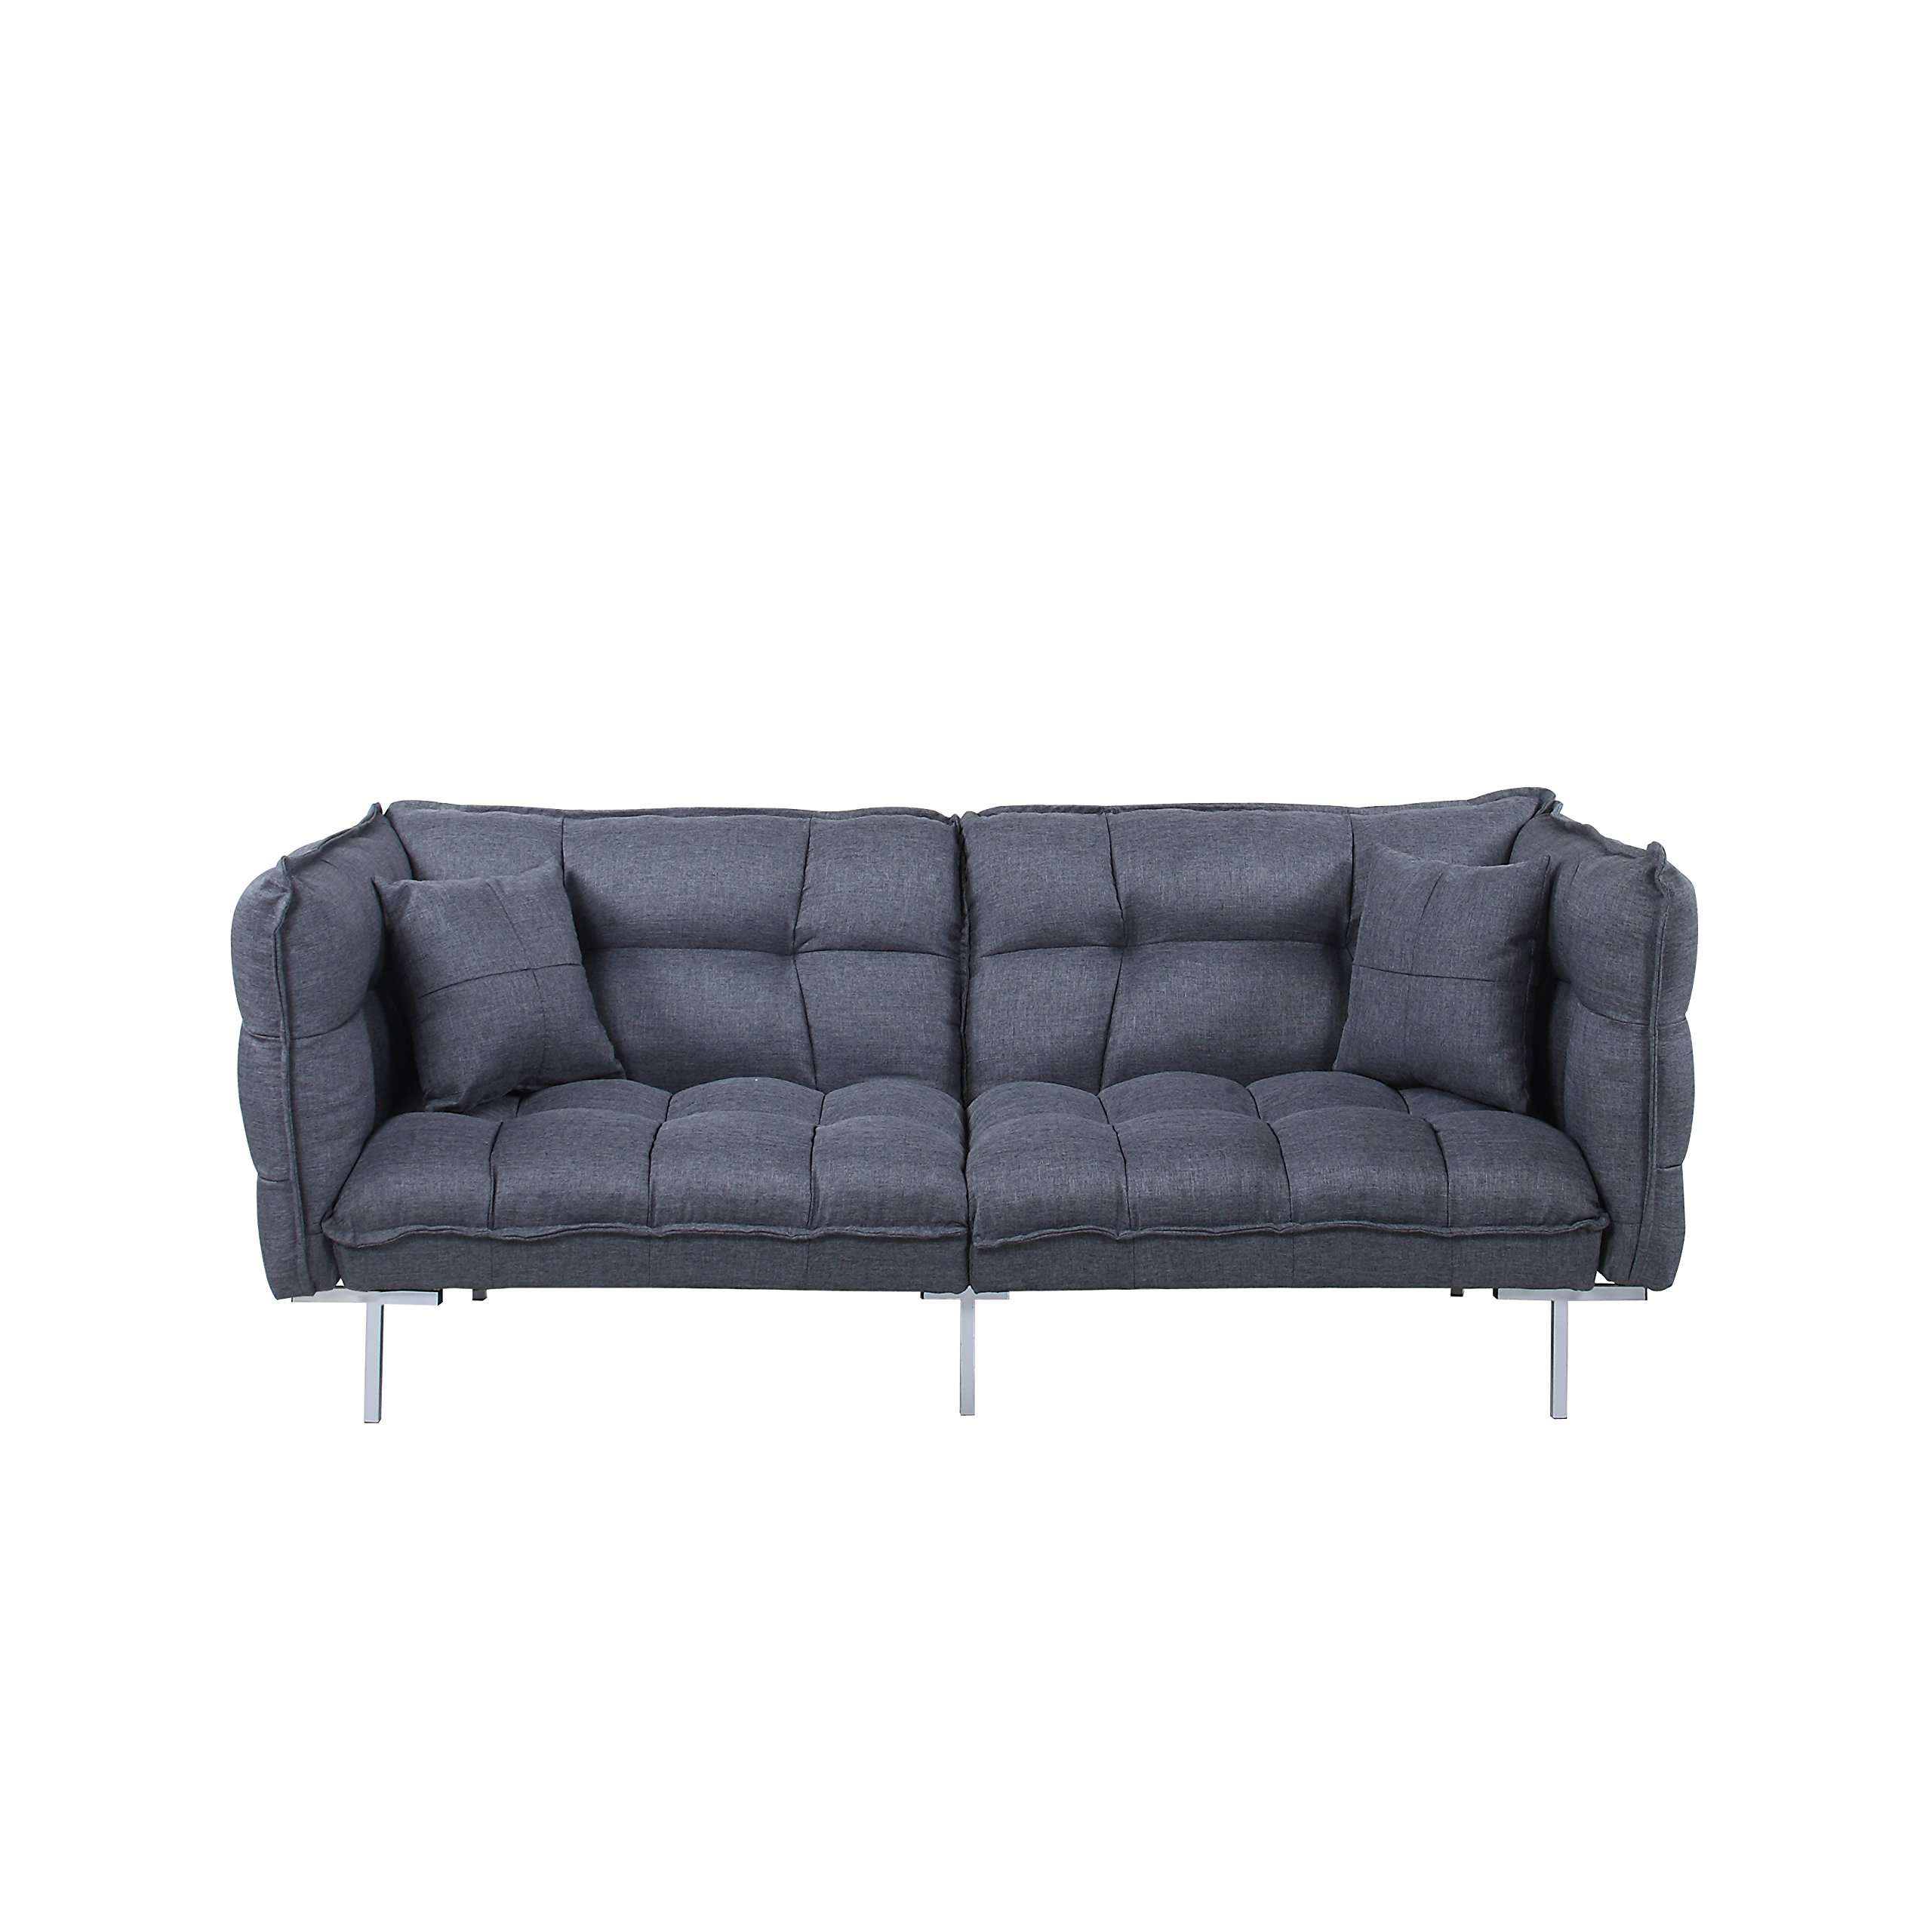 DIVANO ROMA FURNITURE Collection – Modern Plush Tufted Linen Fabric Splitback Living Room Sleeper Futon